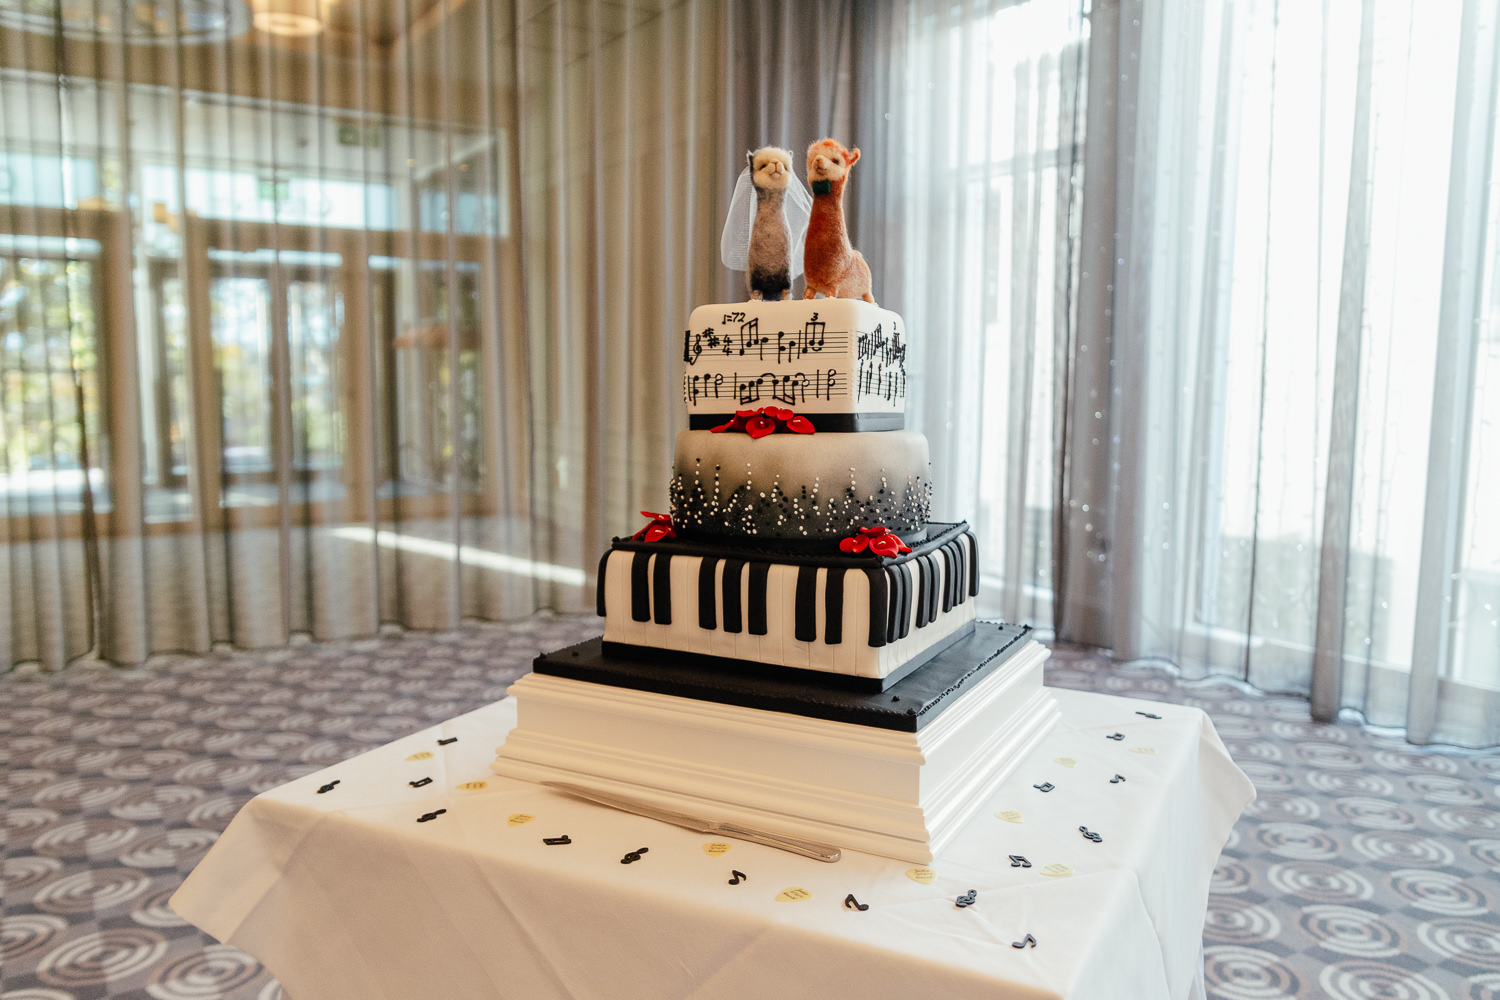 rock music wedding llama rammstein music piano cake chester hotel wedding aberdeen